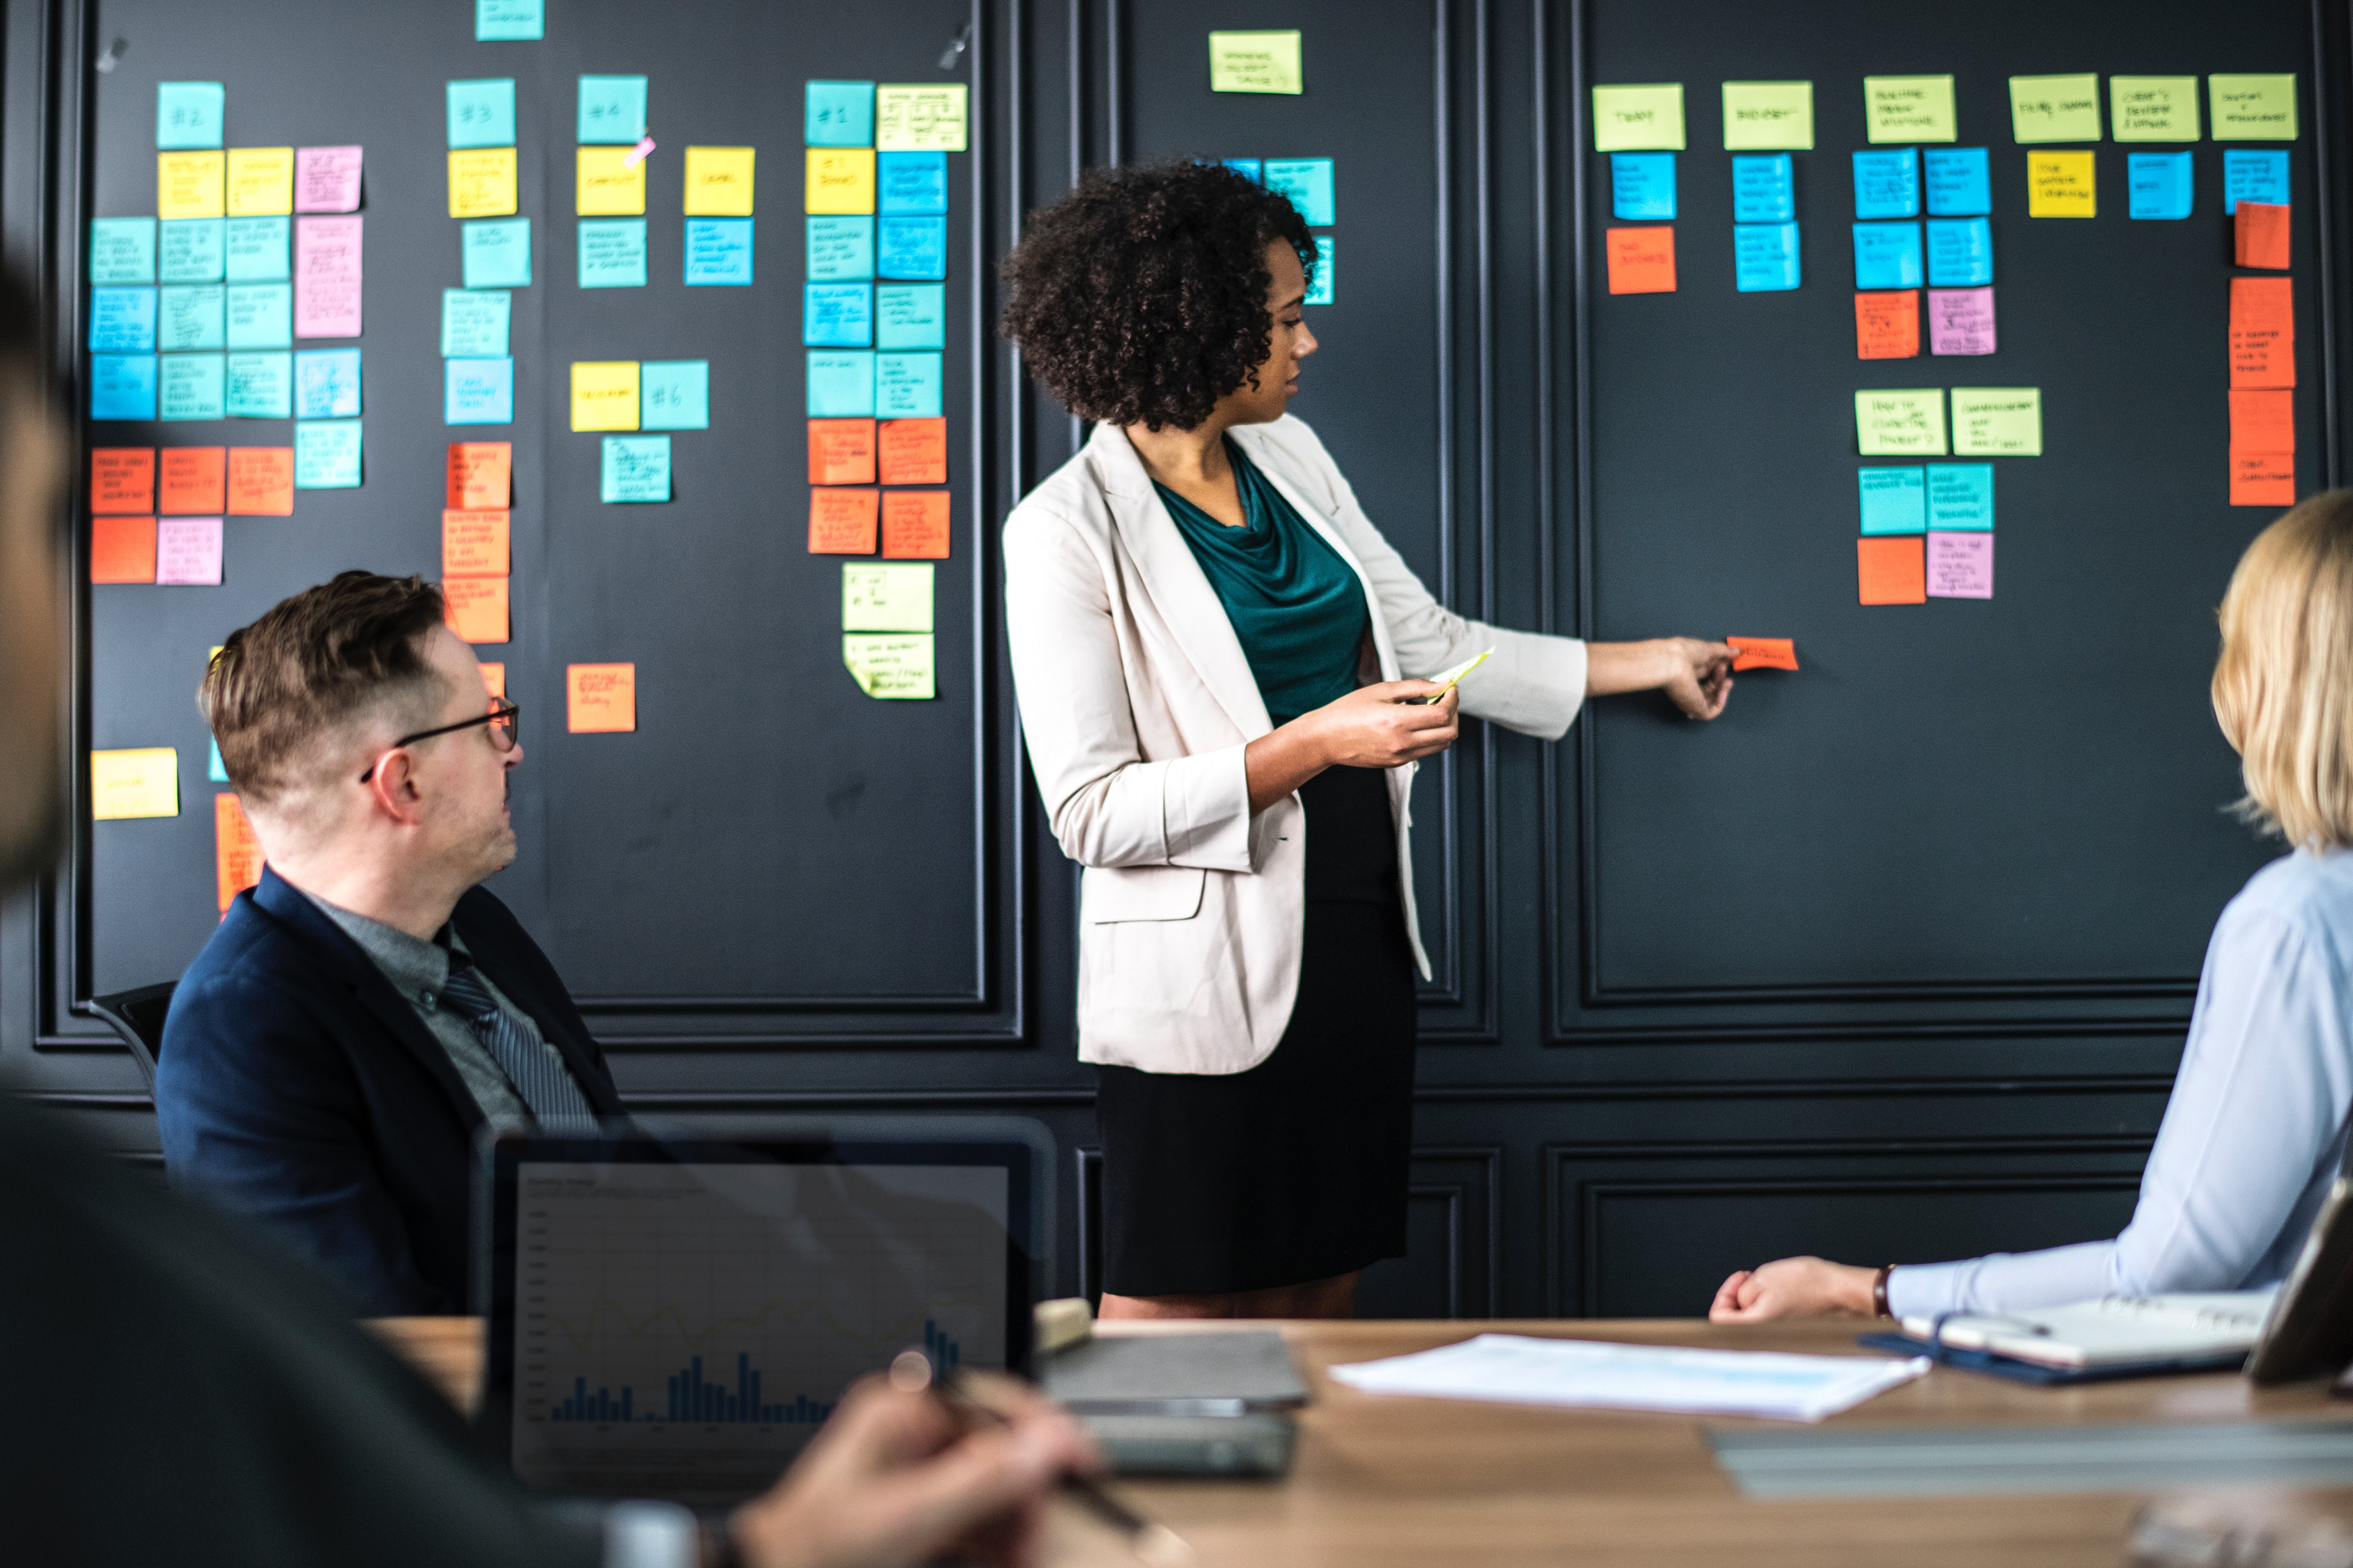 If your startup needs funding, go back to the drawing board